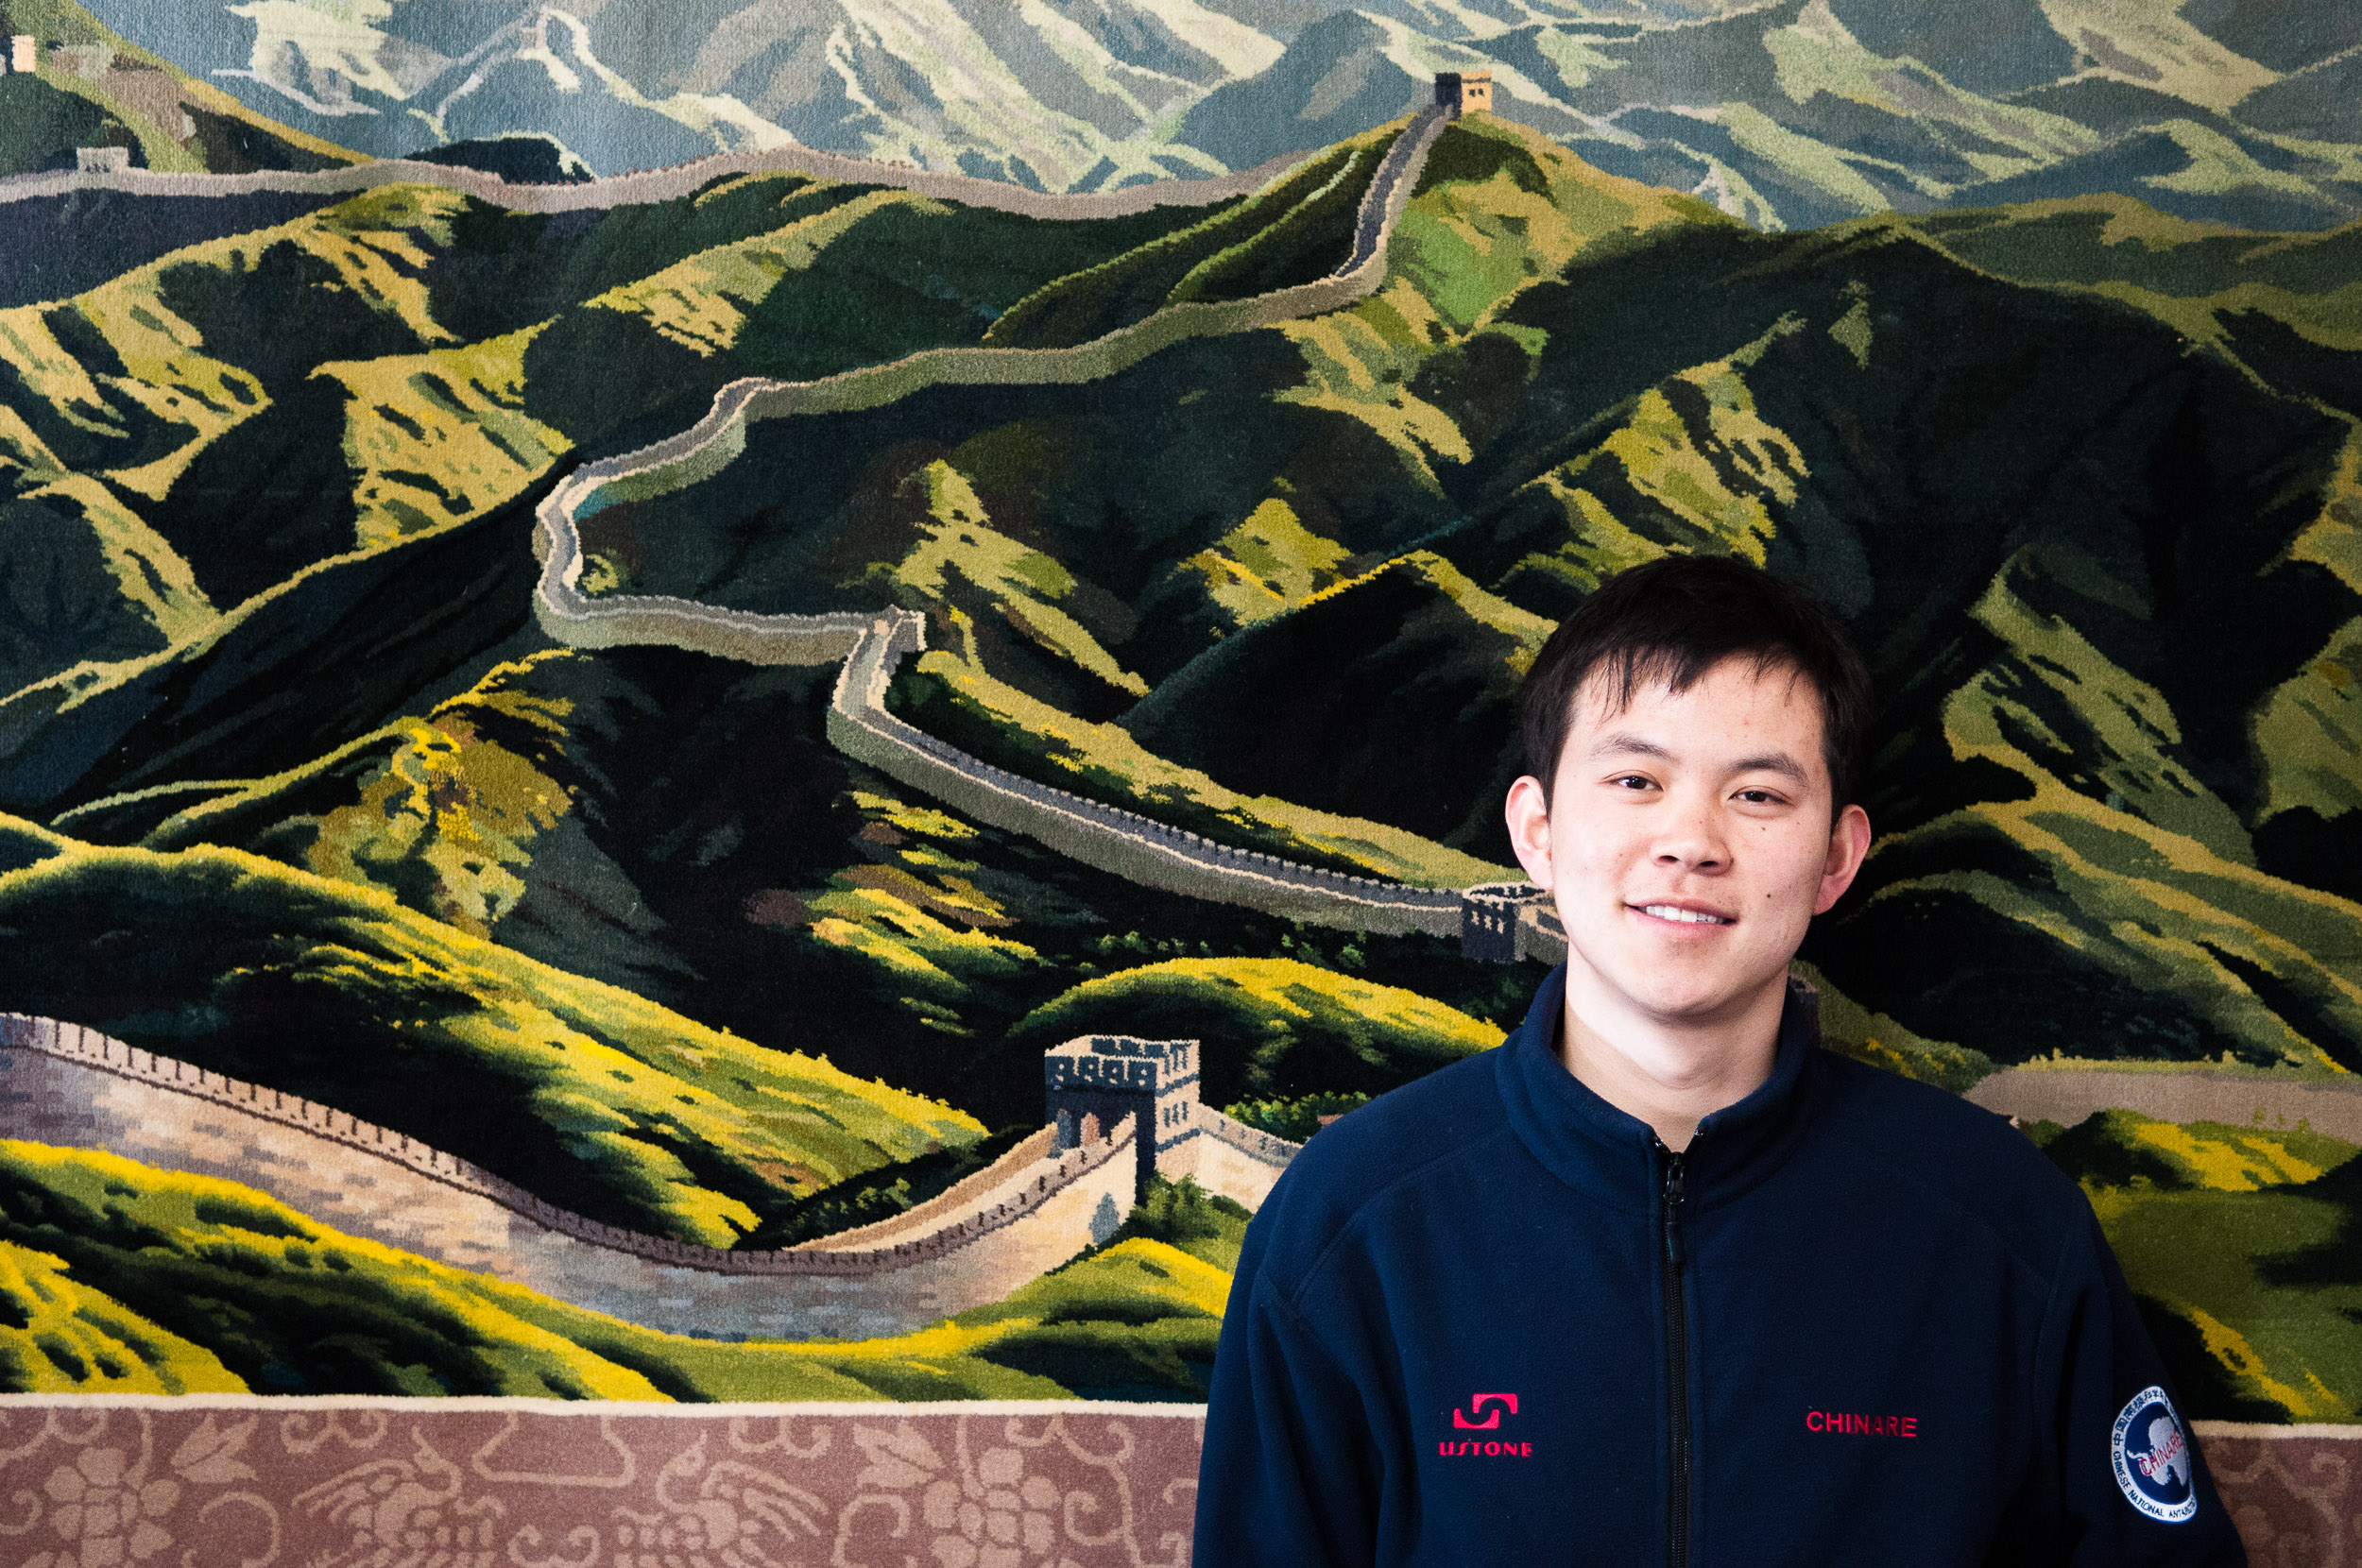 A Chinese Weather Forecaster poses for a portrait with the Great Wall as a back drop. Great Wall Station, King George Island, South Shetland Islands, Antarctica. Chinese researchers spend two-year stints at the Great Wall station.